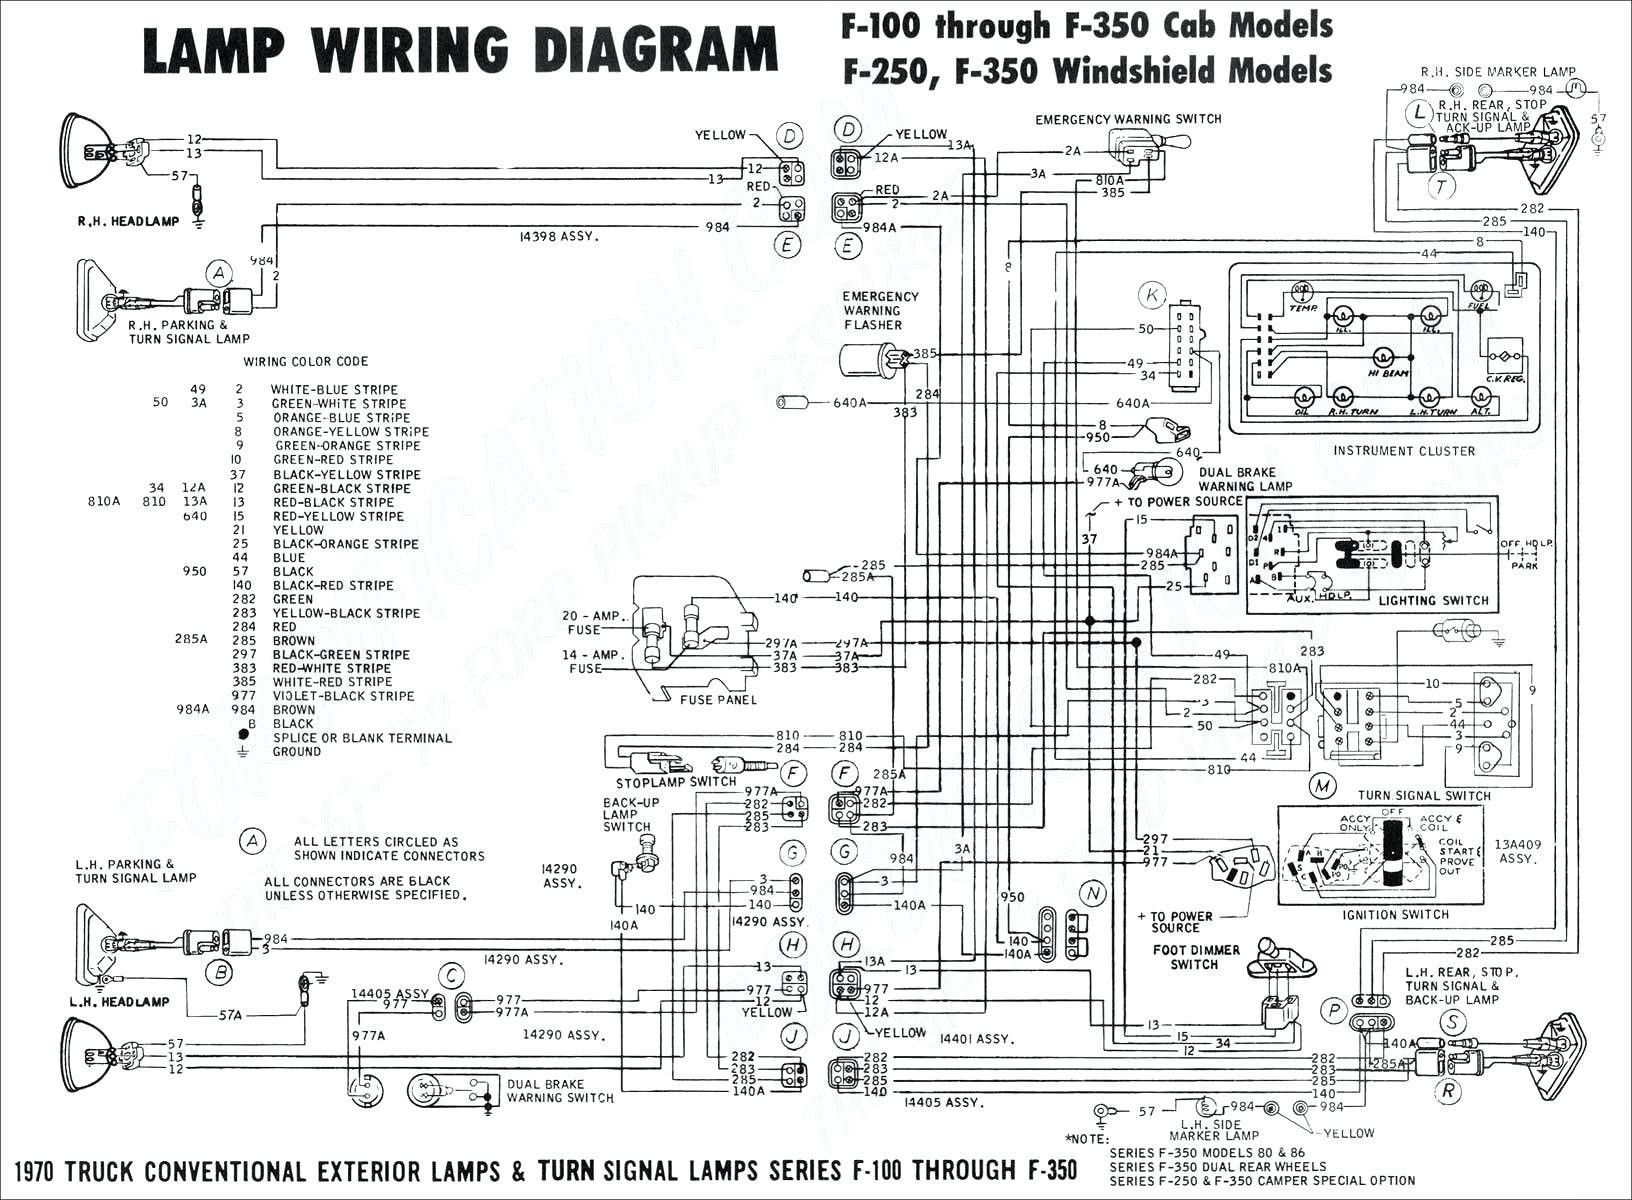 John Deere 4020 Wiring Diagram / 4020 Fuel Pump Wiring